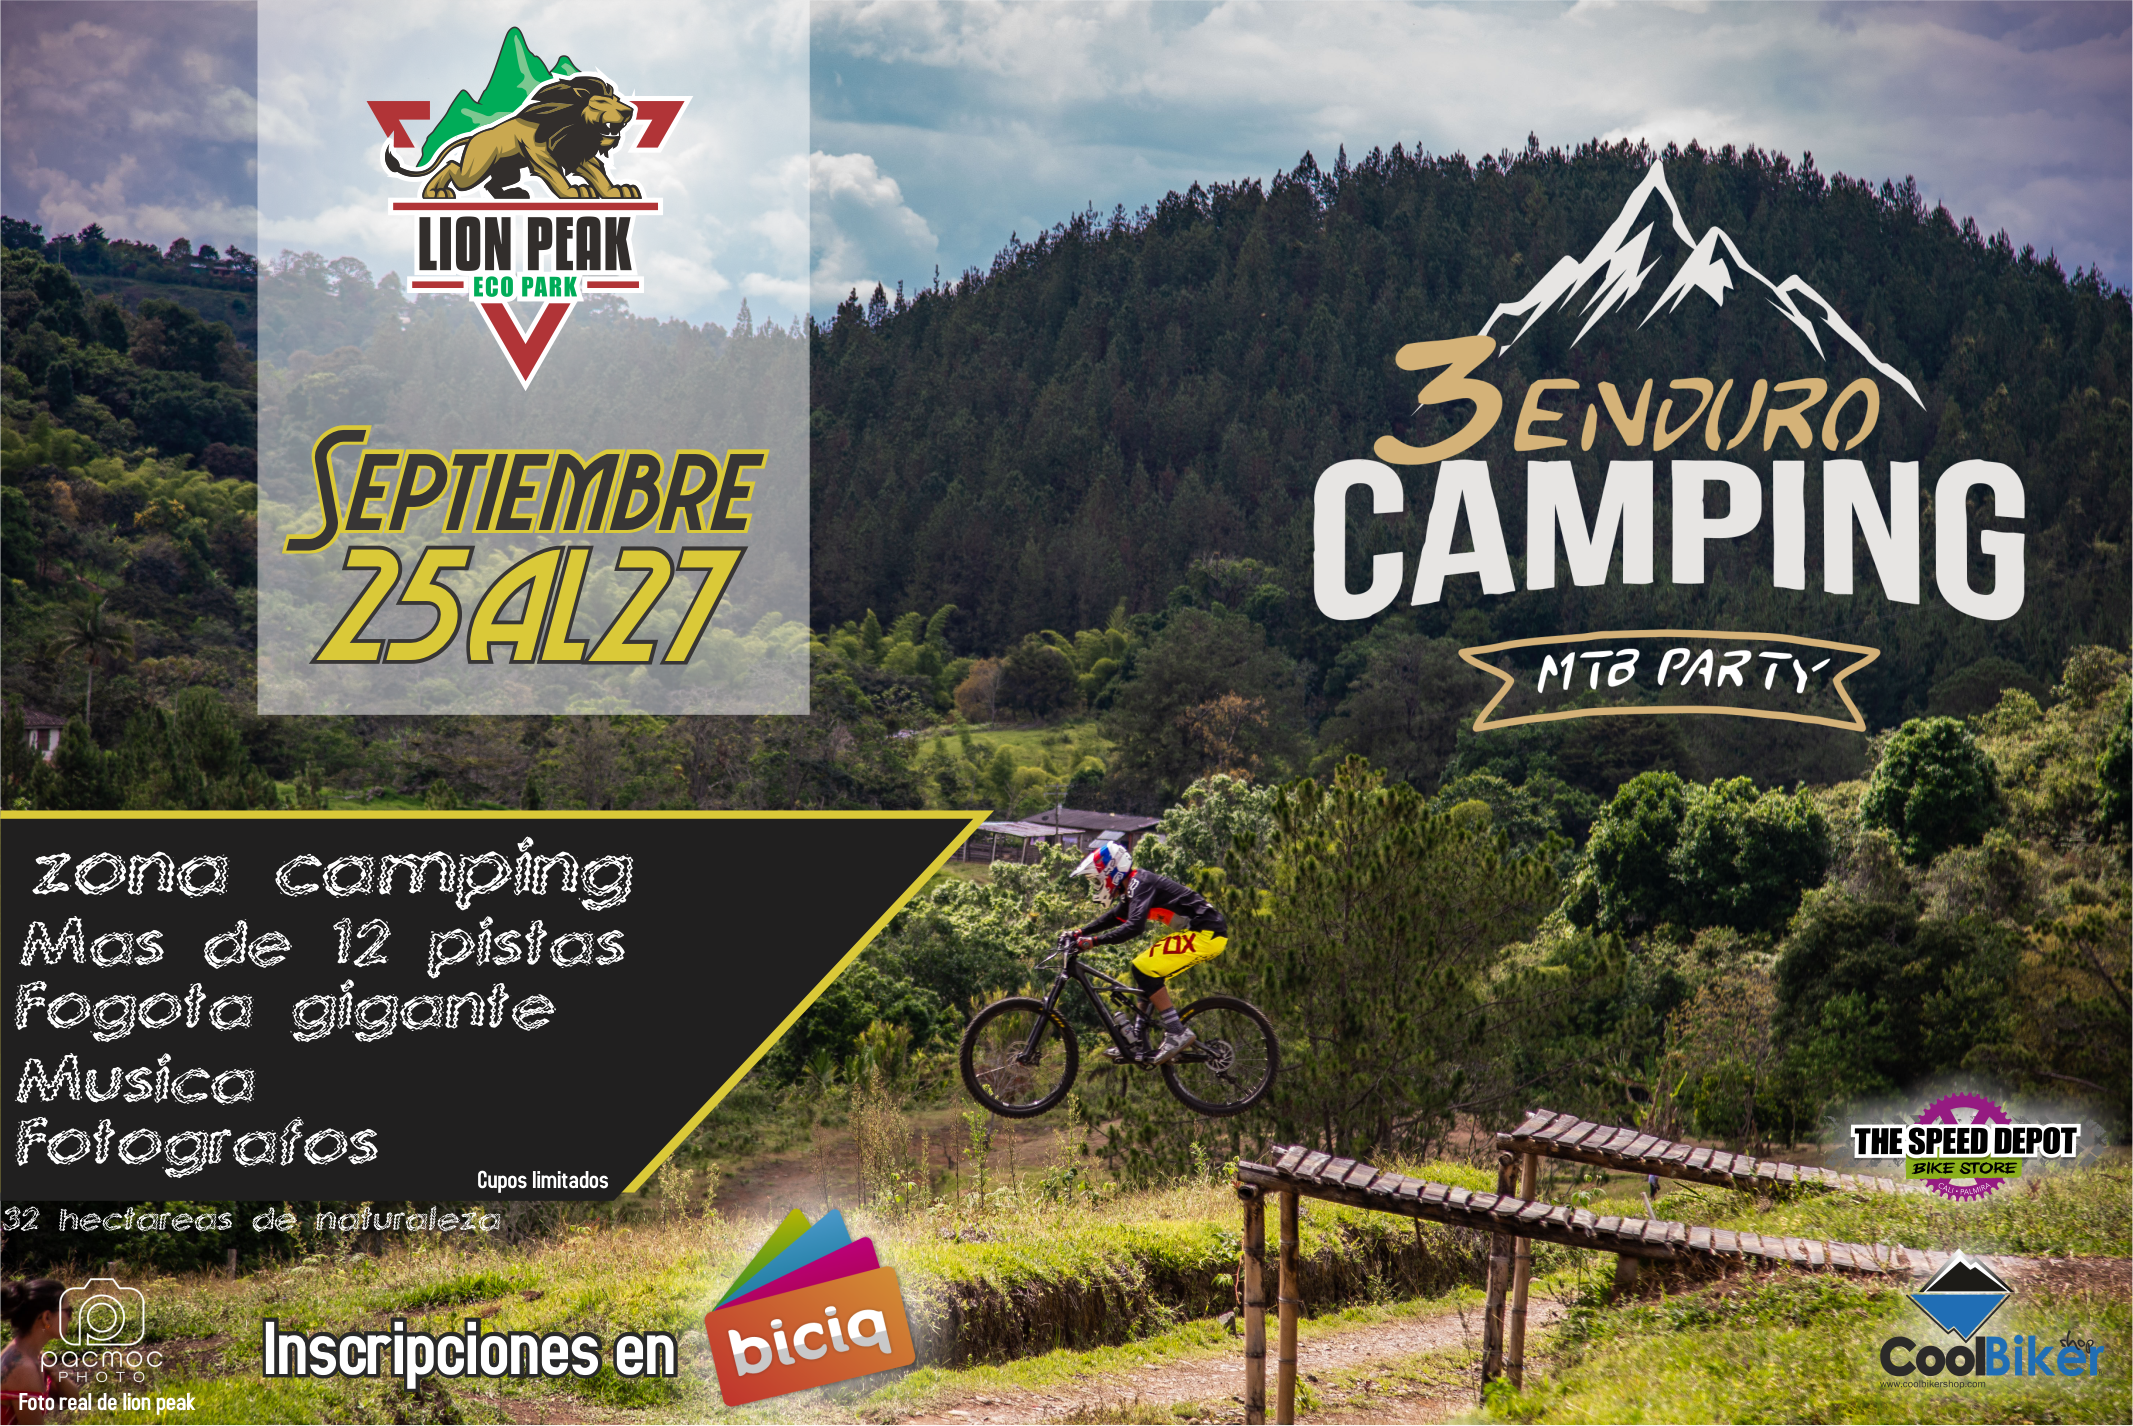 3 enduro camp